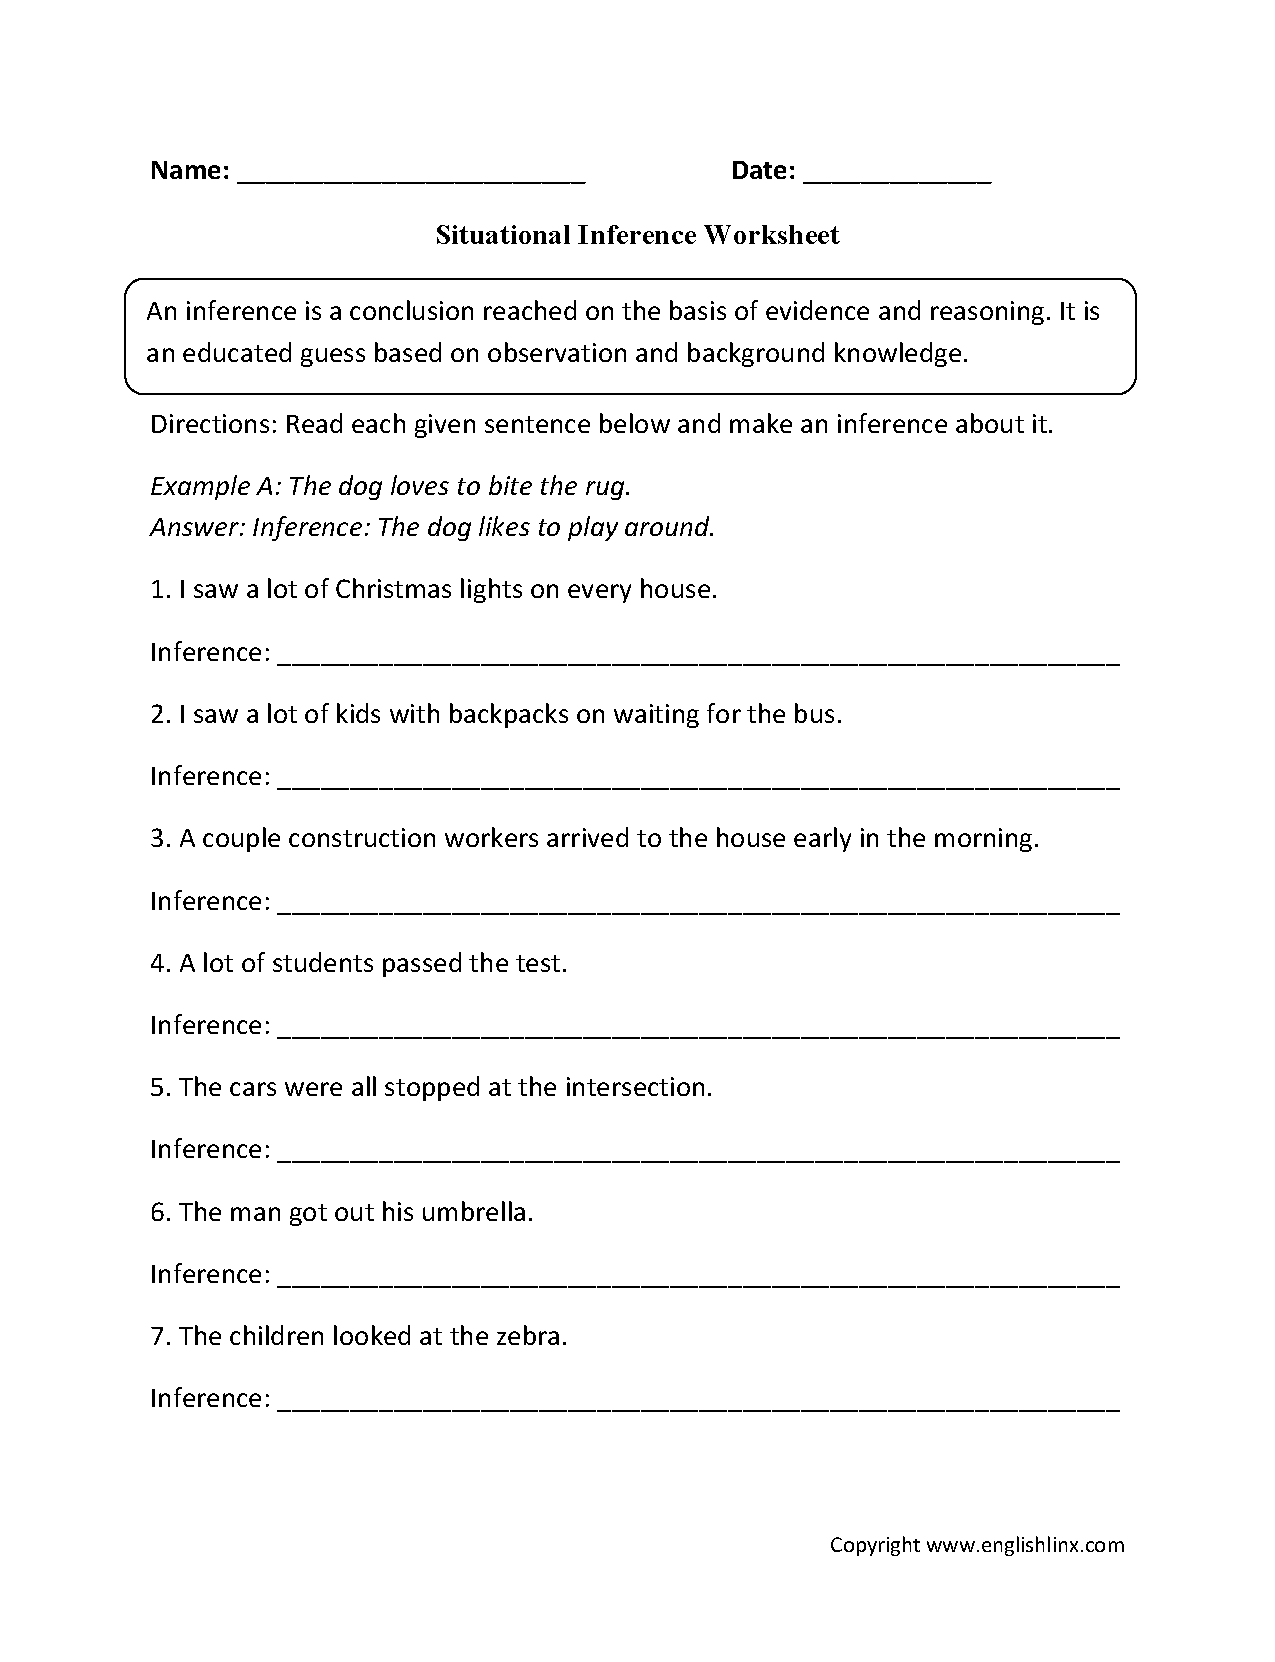 Worksheets Inferences Worksheet 1 reading worksheets inference worksheets